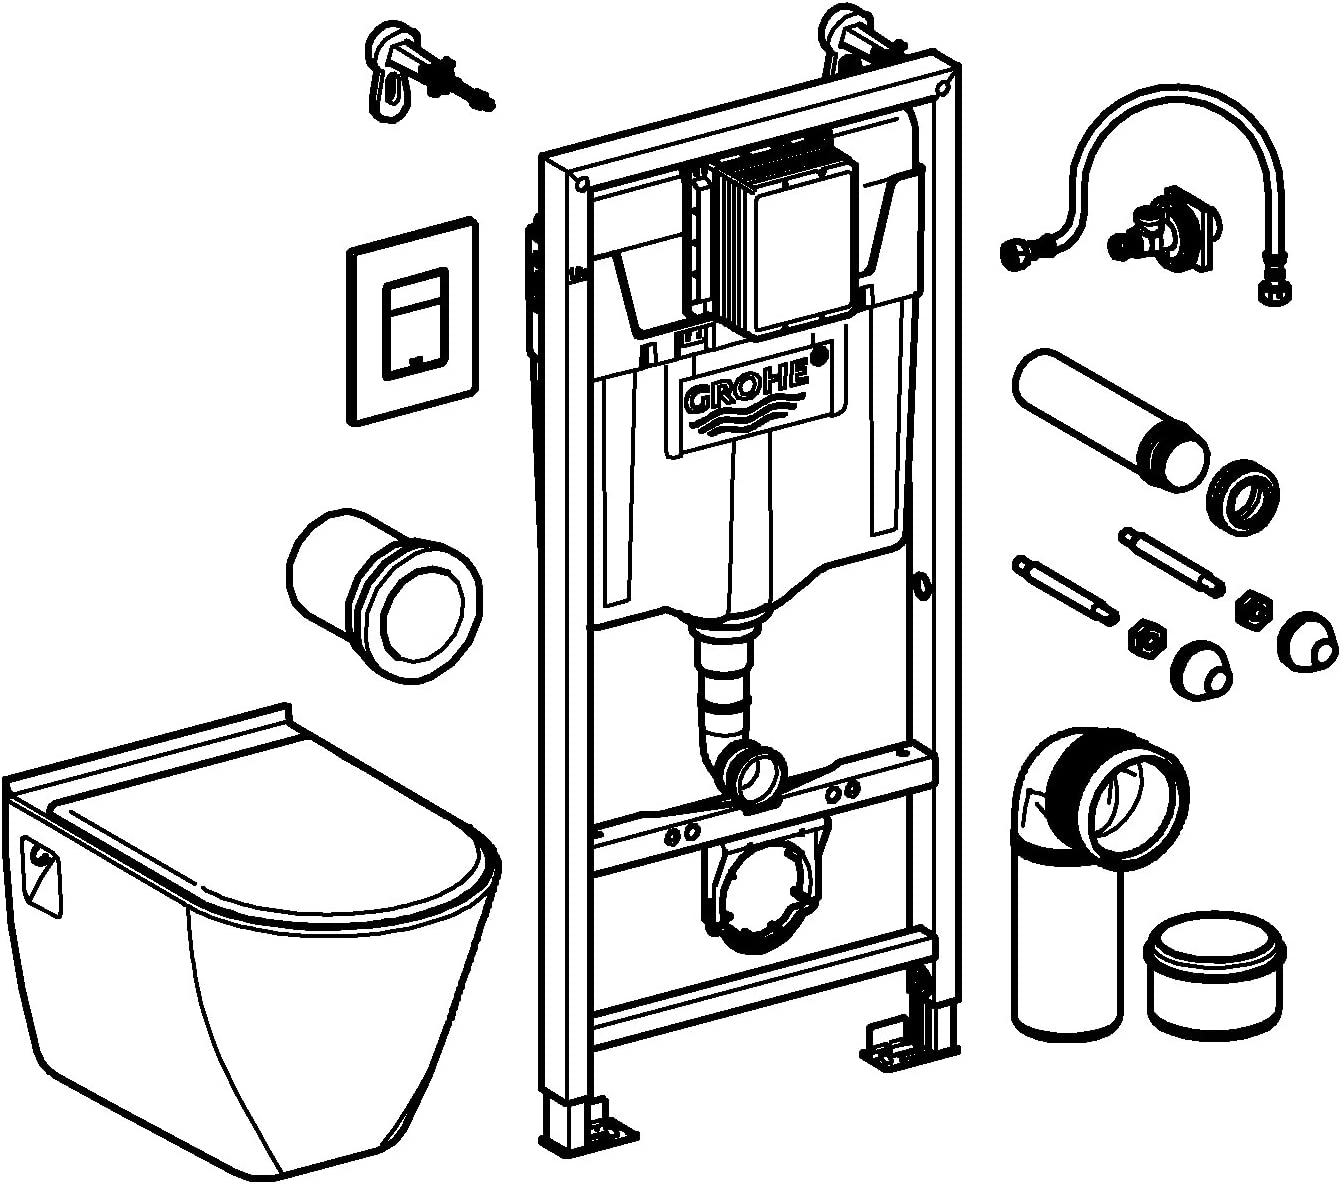 Grohe 39116000/Ceramic Compact Solido Set WC 39116000